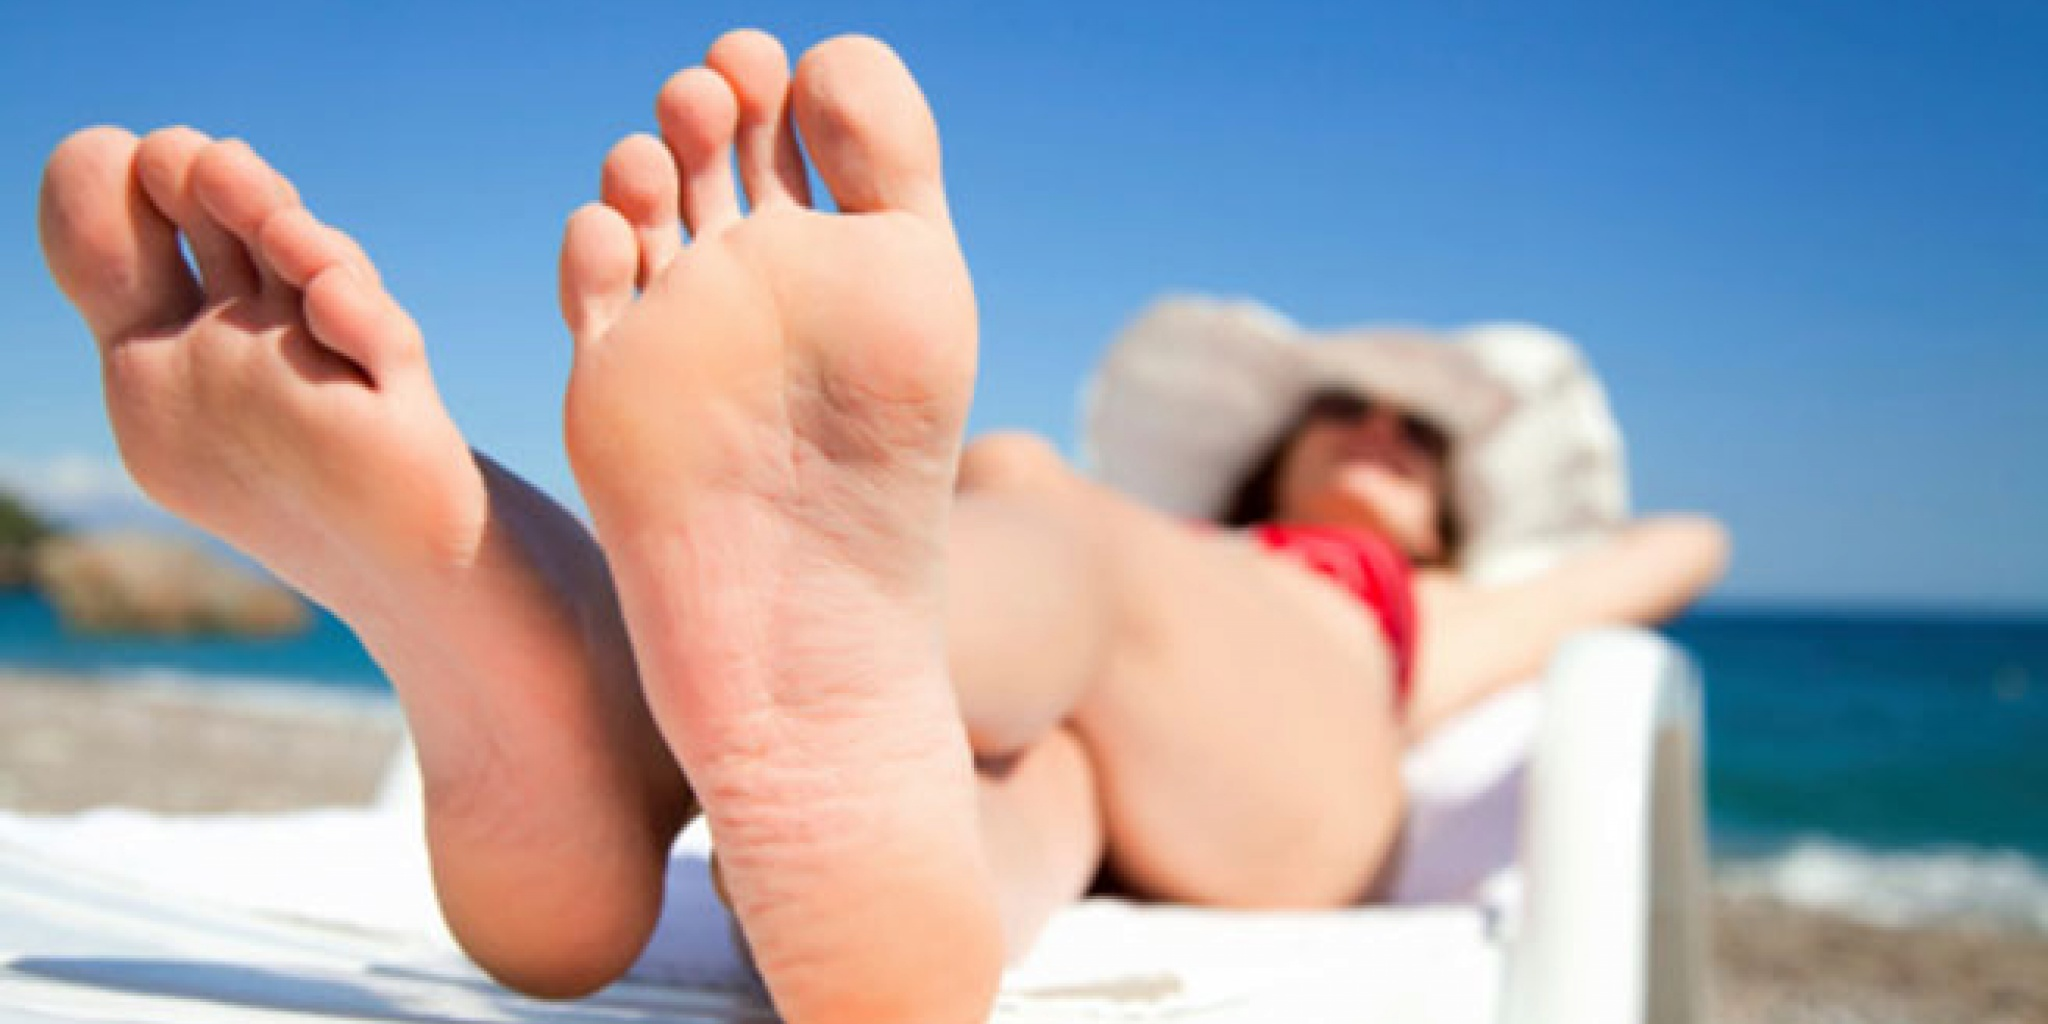 7 STEPS FOR GREAT FEET